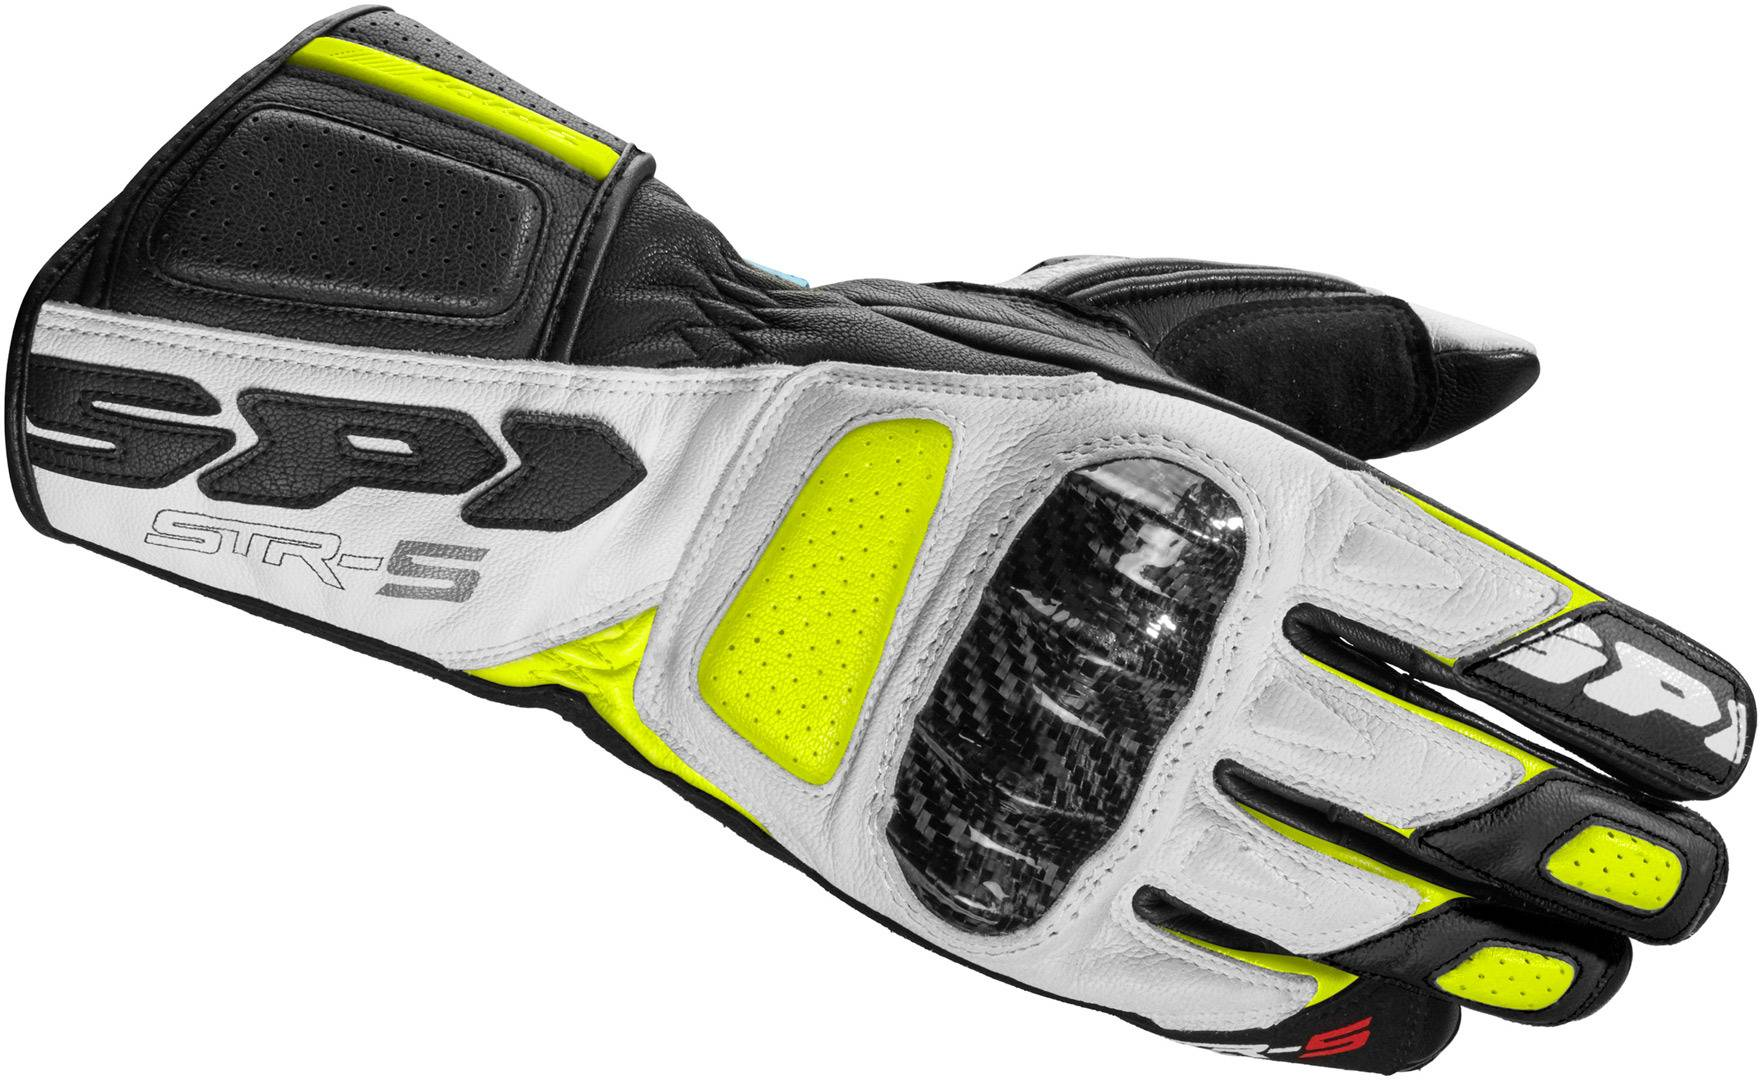 Spidi STR-5 Gloves Black Yellow XL